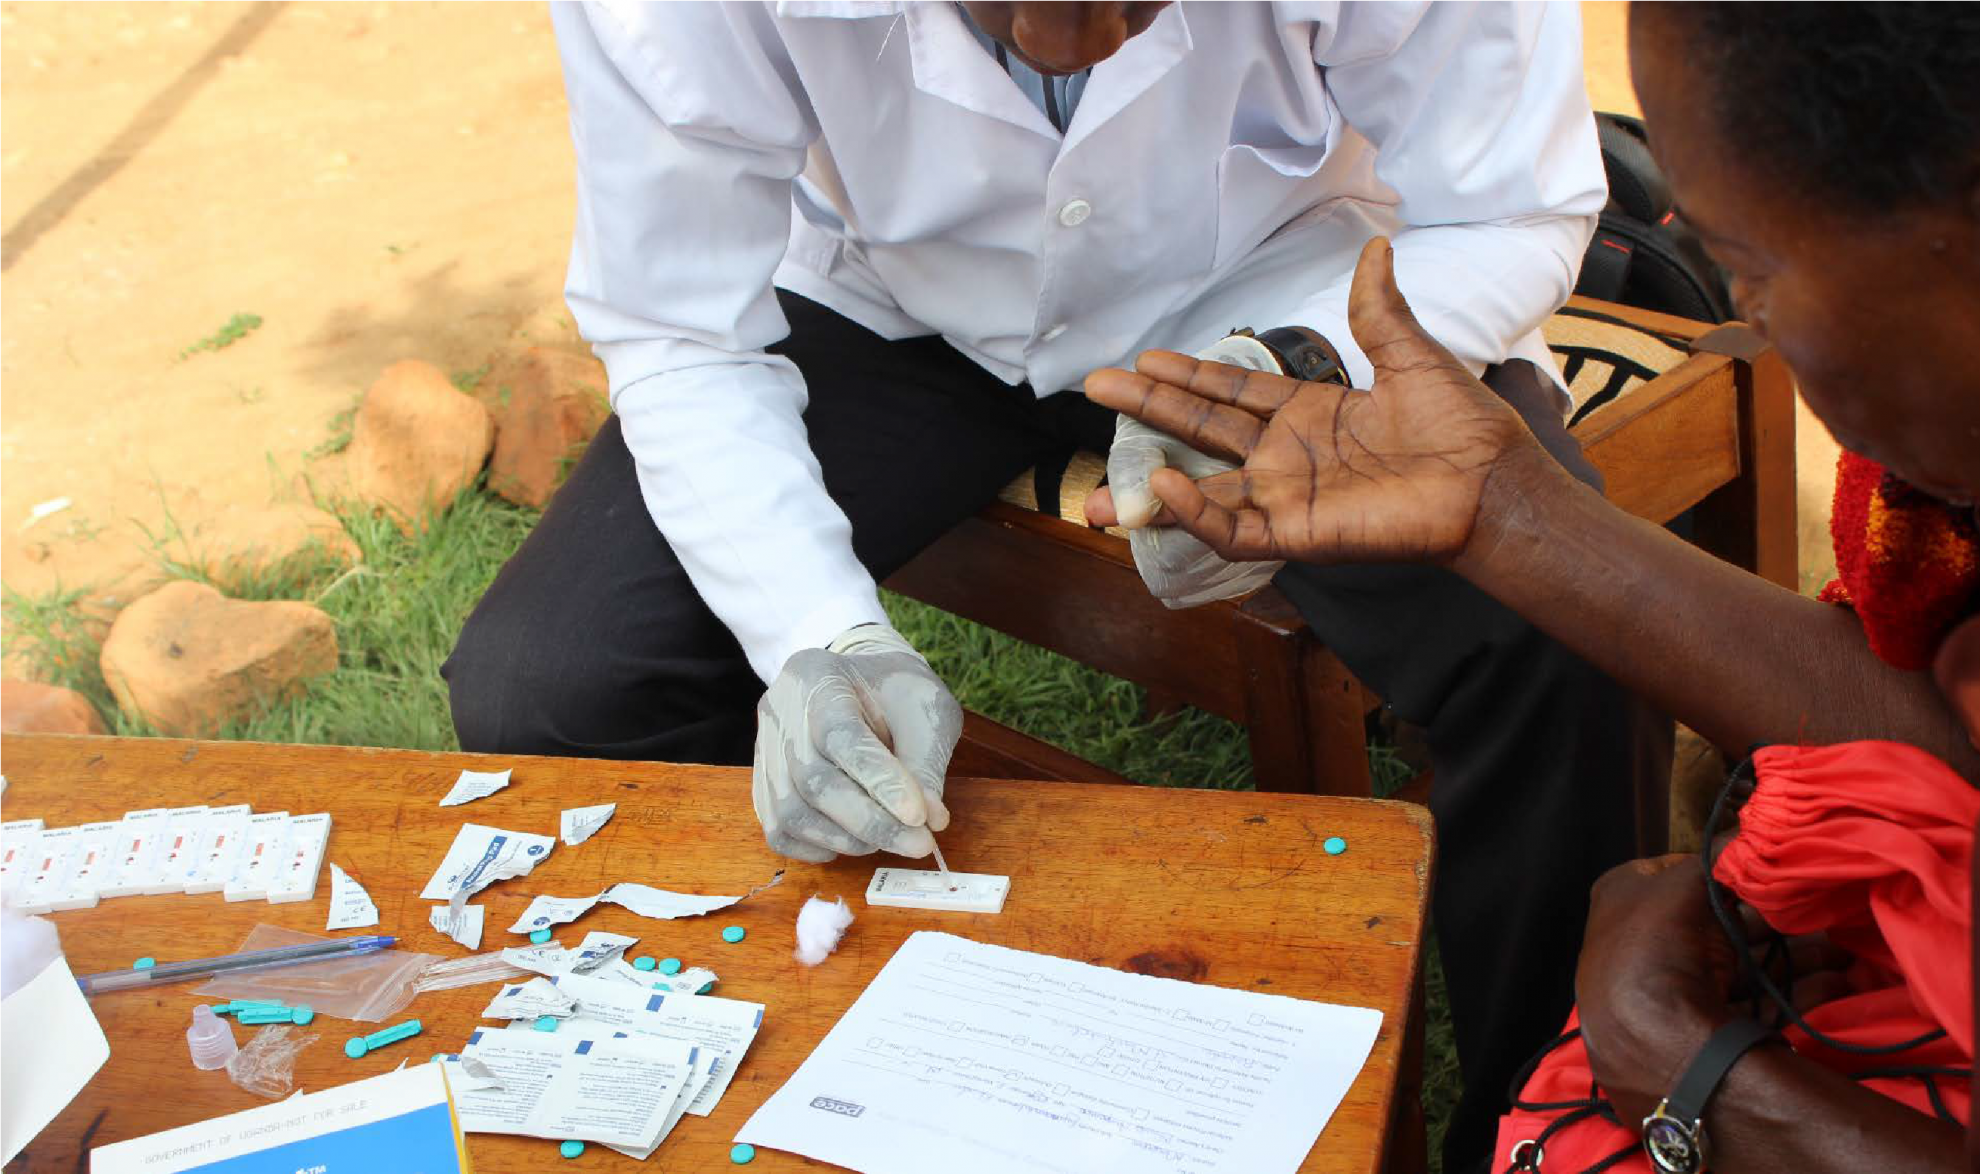 Latest News Covid 19 and malaria how surveillance systems can adapt to fight both